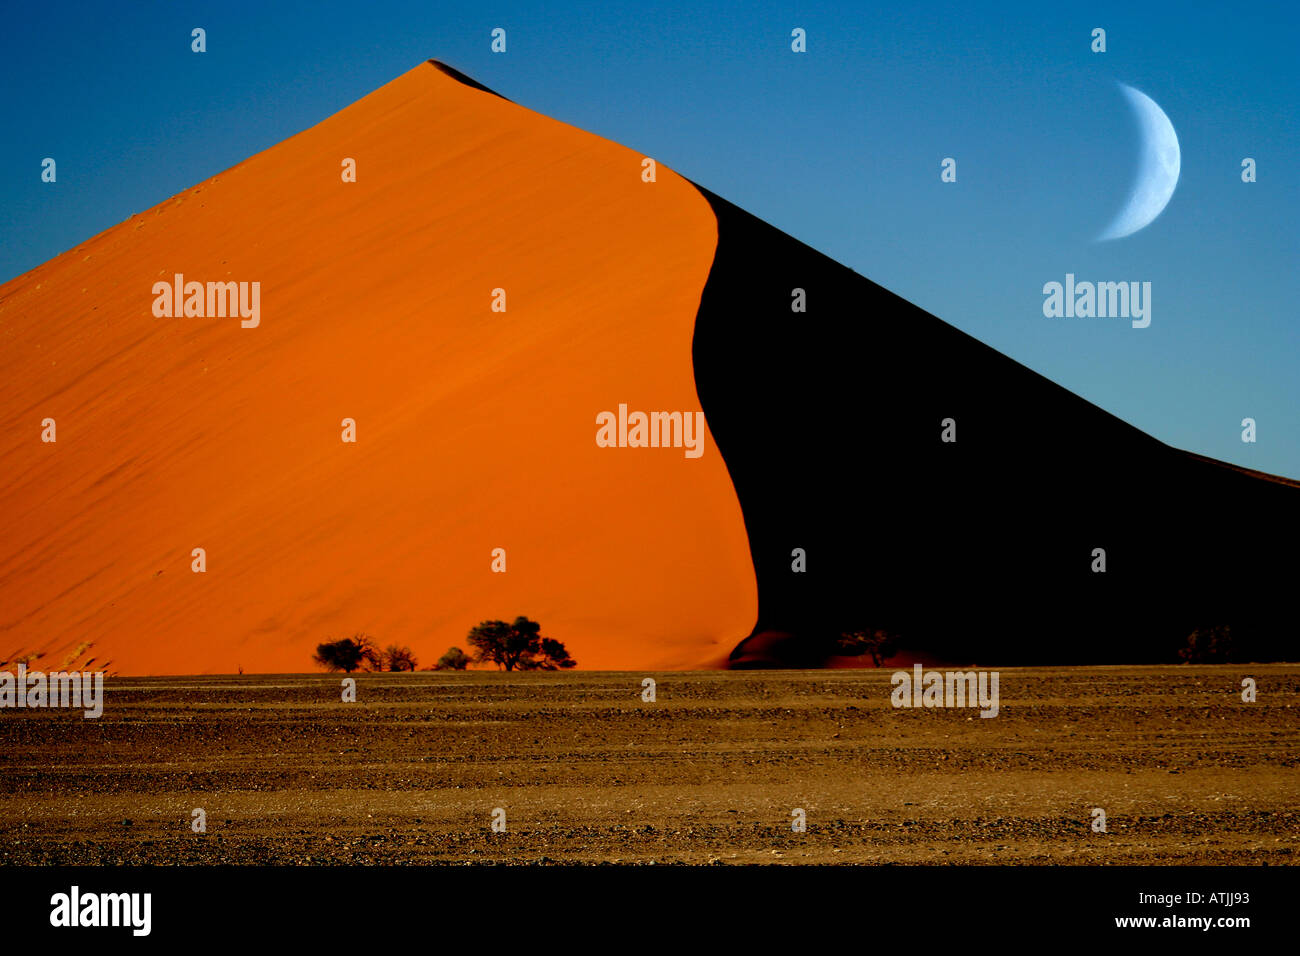 La Namibie Afrique Sesriem Sossusvlei sand dune Photo Stock